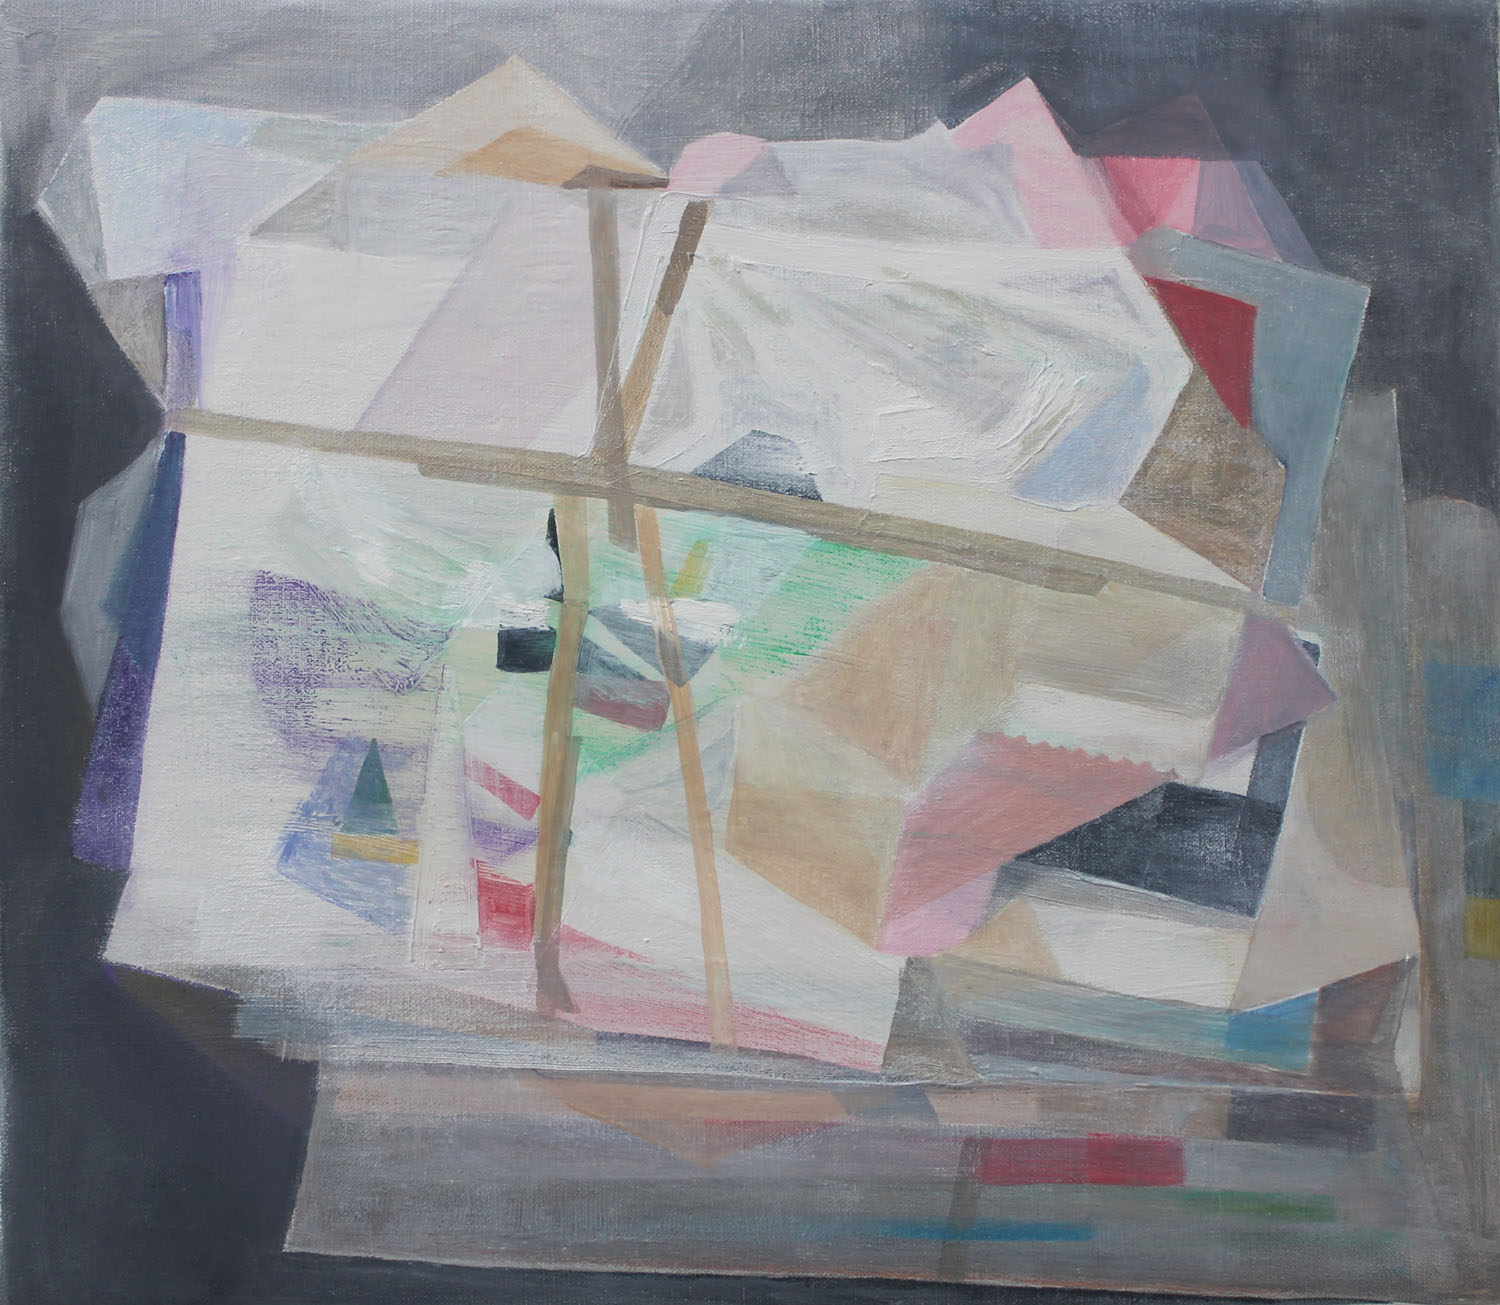 Taped Boxes    2018, oil on canvas, 35 x 40cm